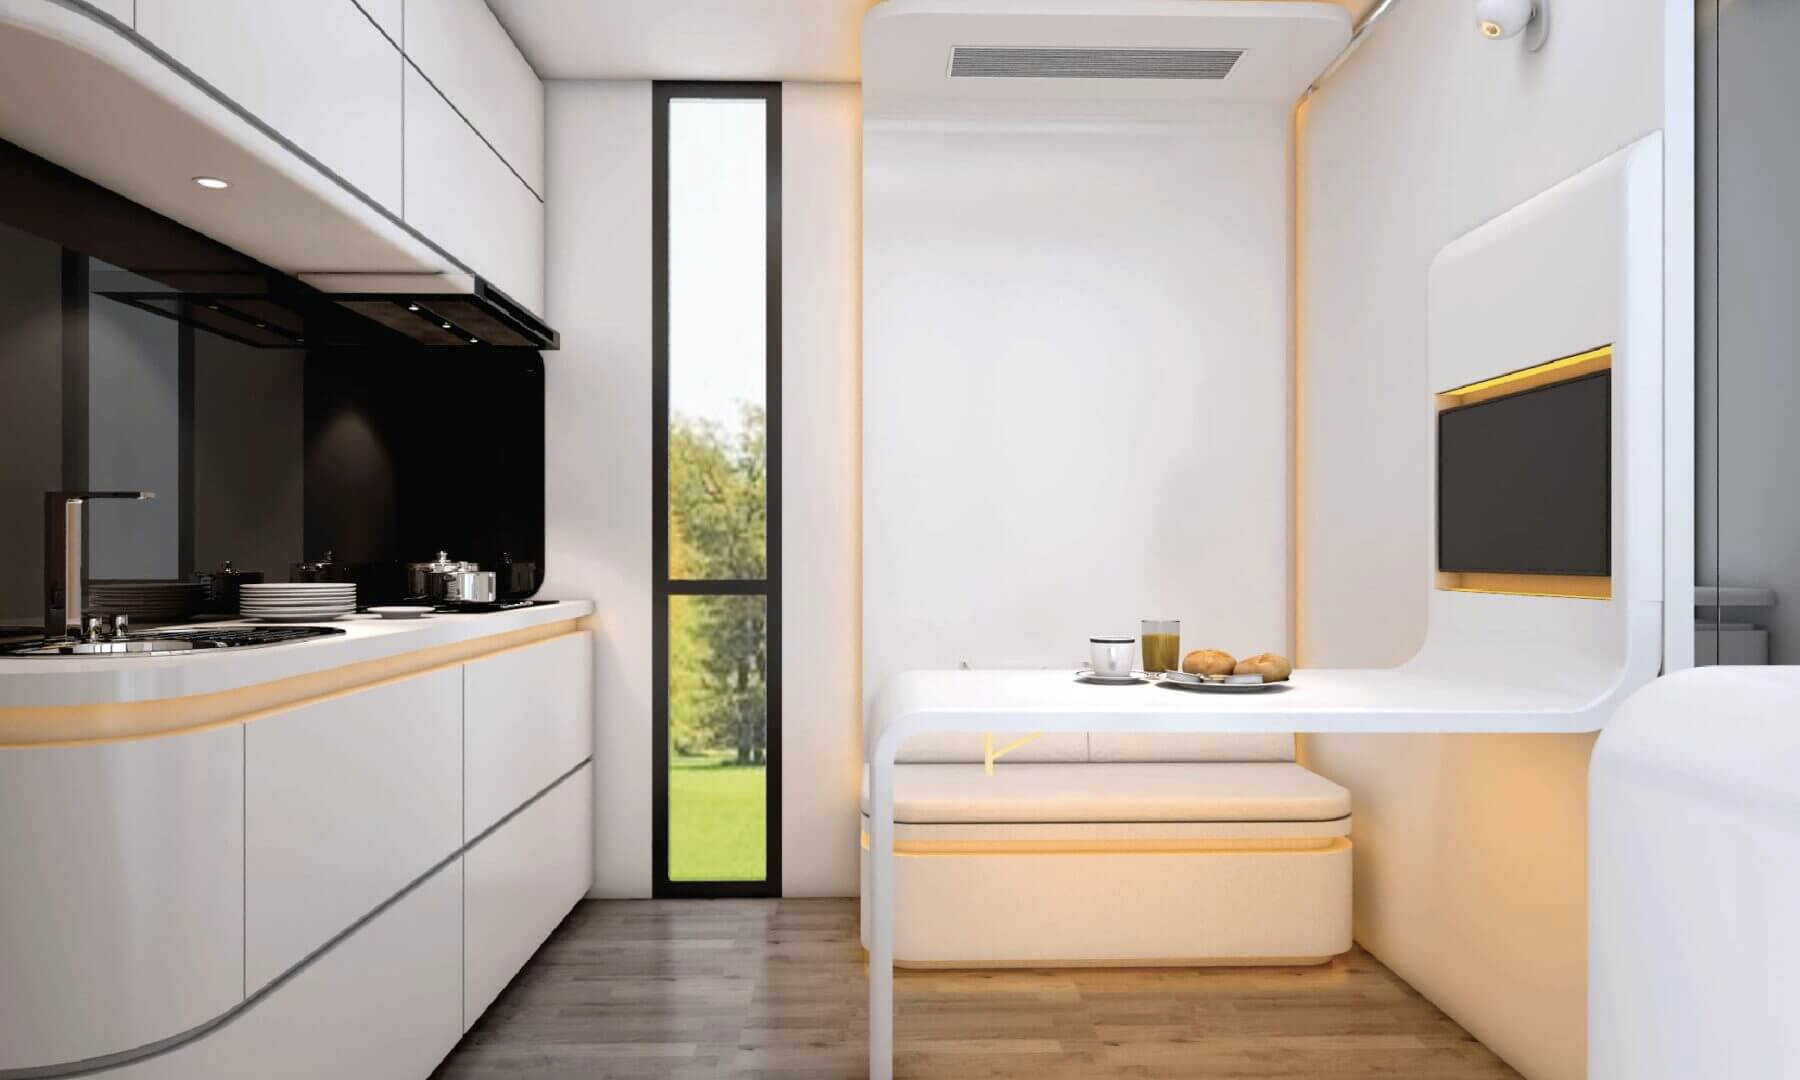 Meet Cube One – a sci-fi take on the tiny home trend